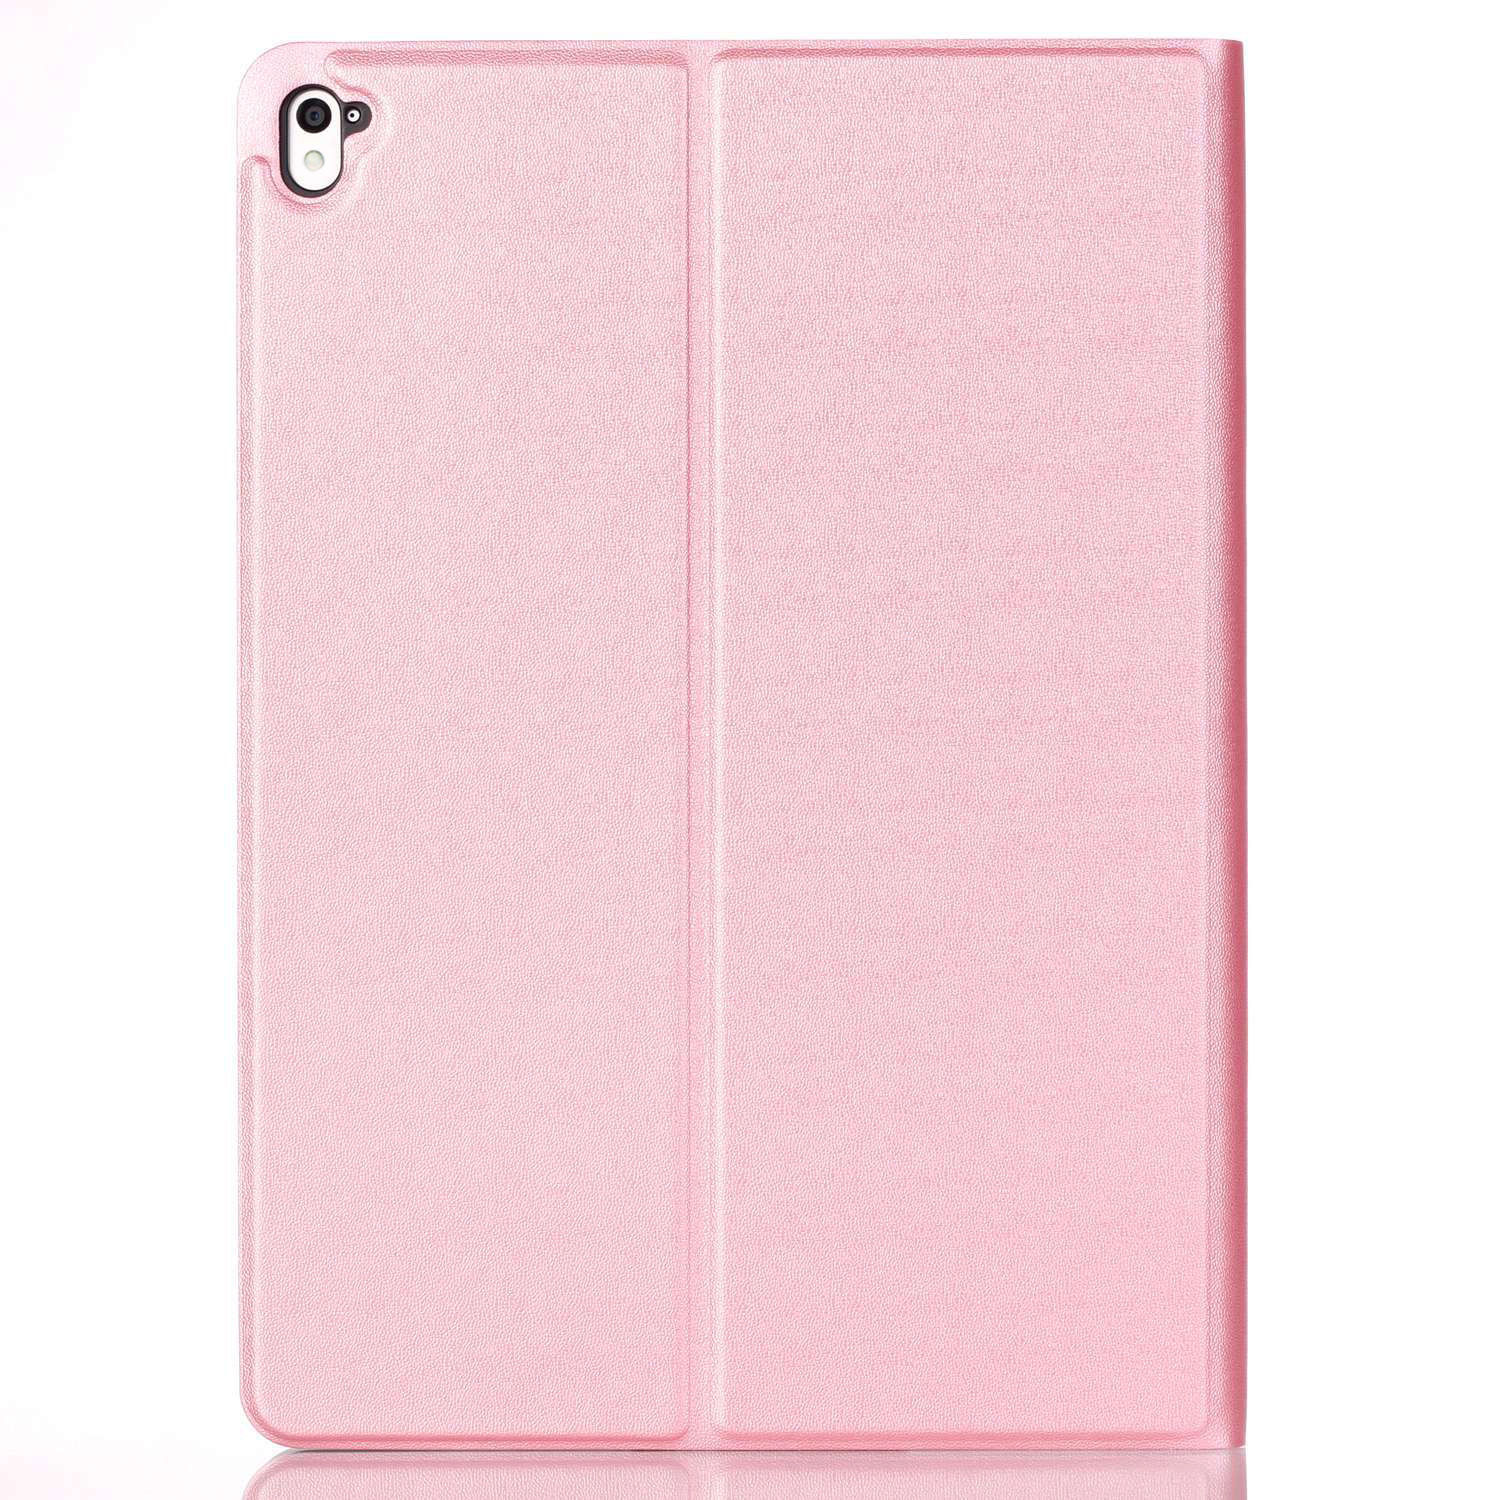 Custodia-Per-Apple-IPAD-Pro-IN-9-7-Pollici-Case-Cover-Protettiva-Skin-Shell miniatura 24